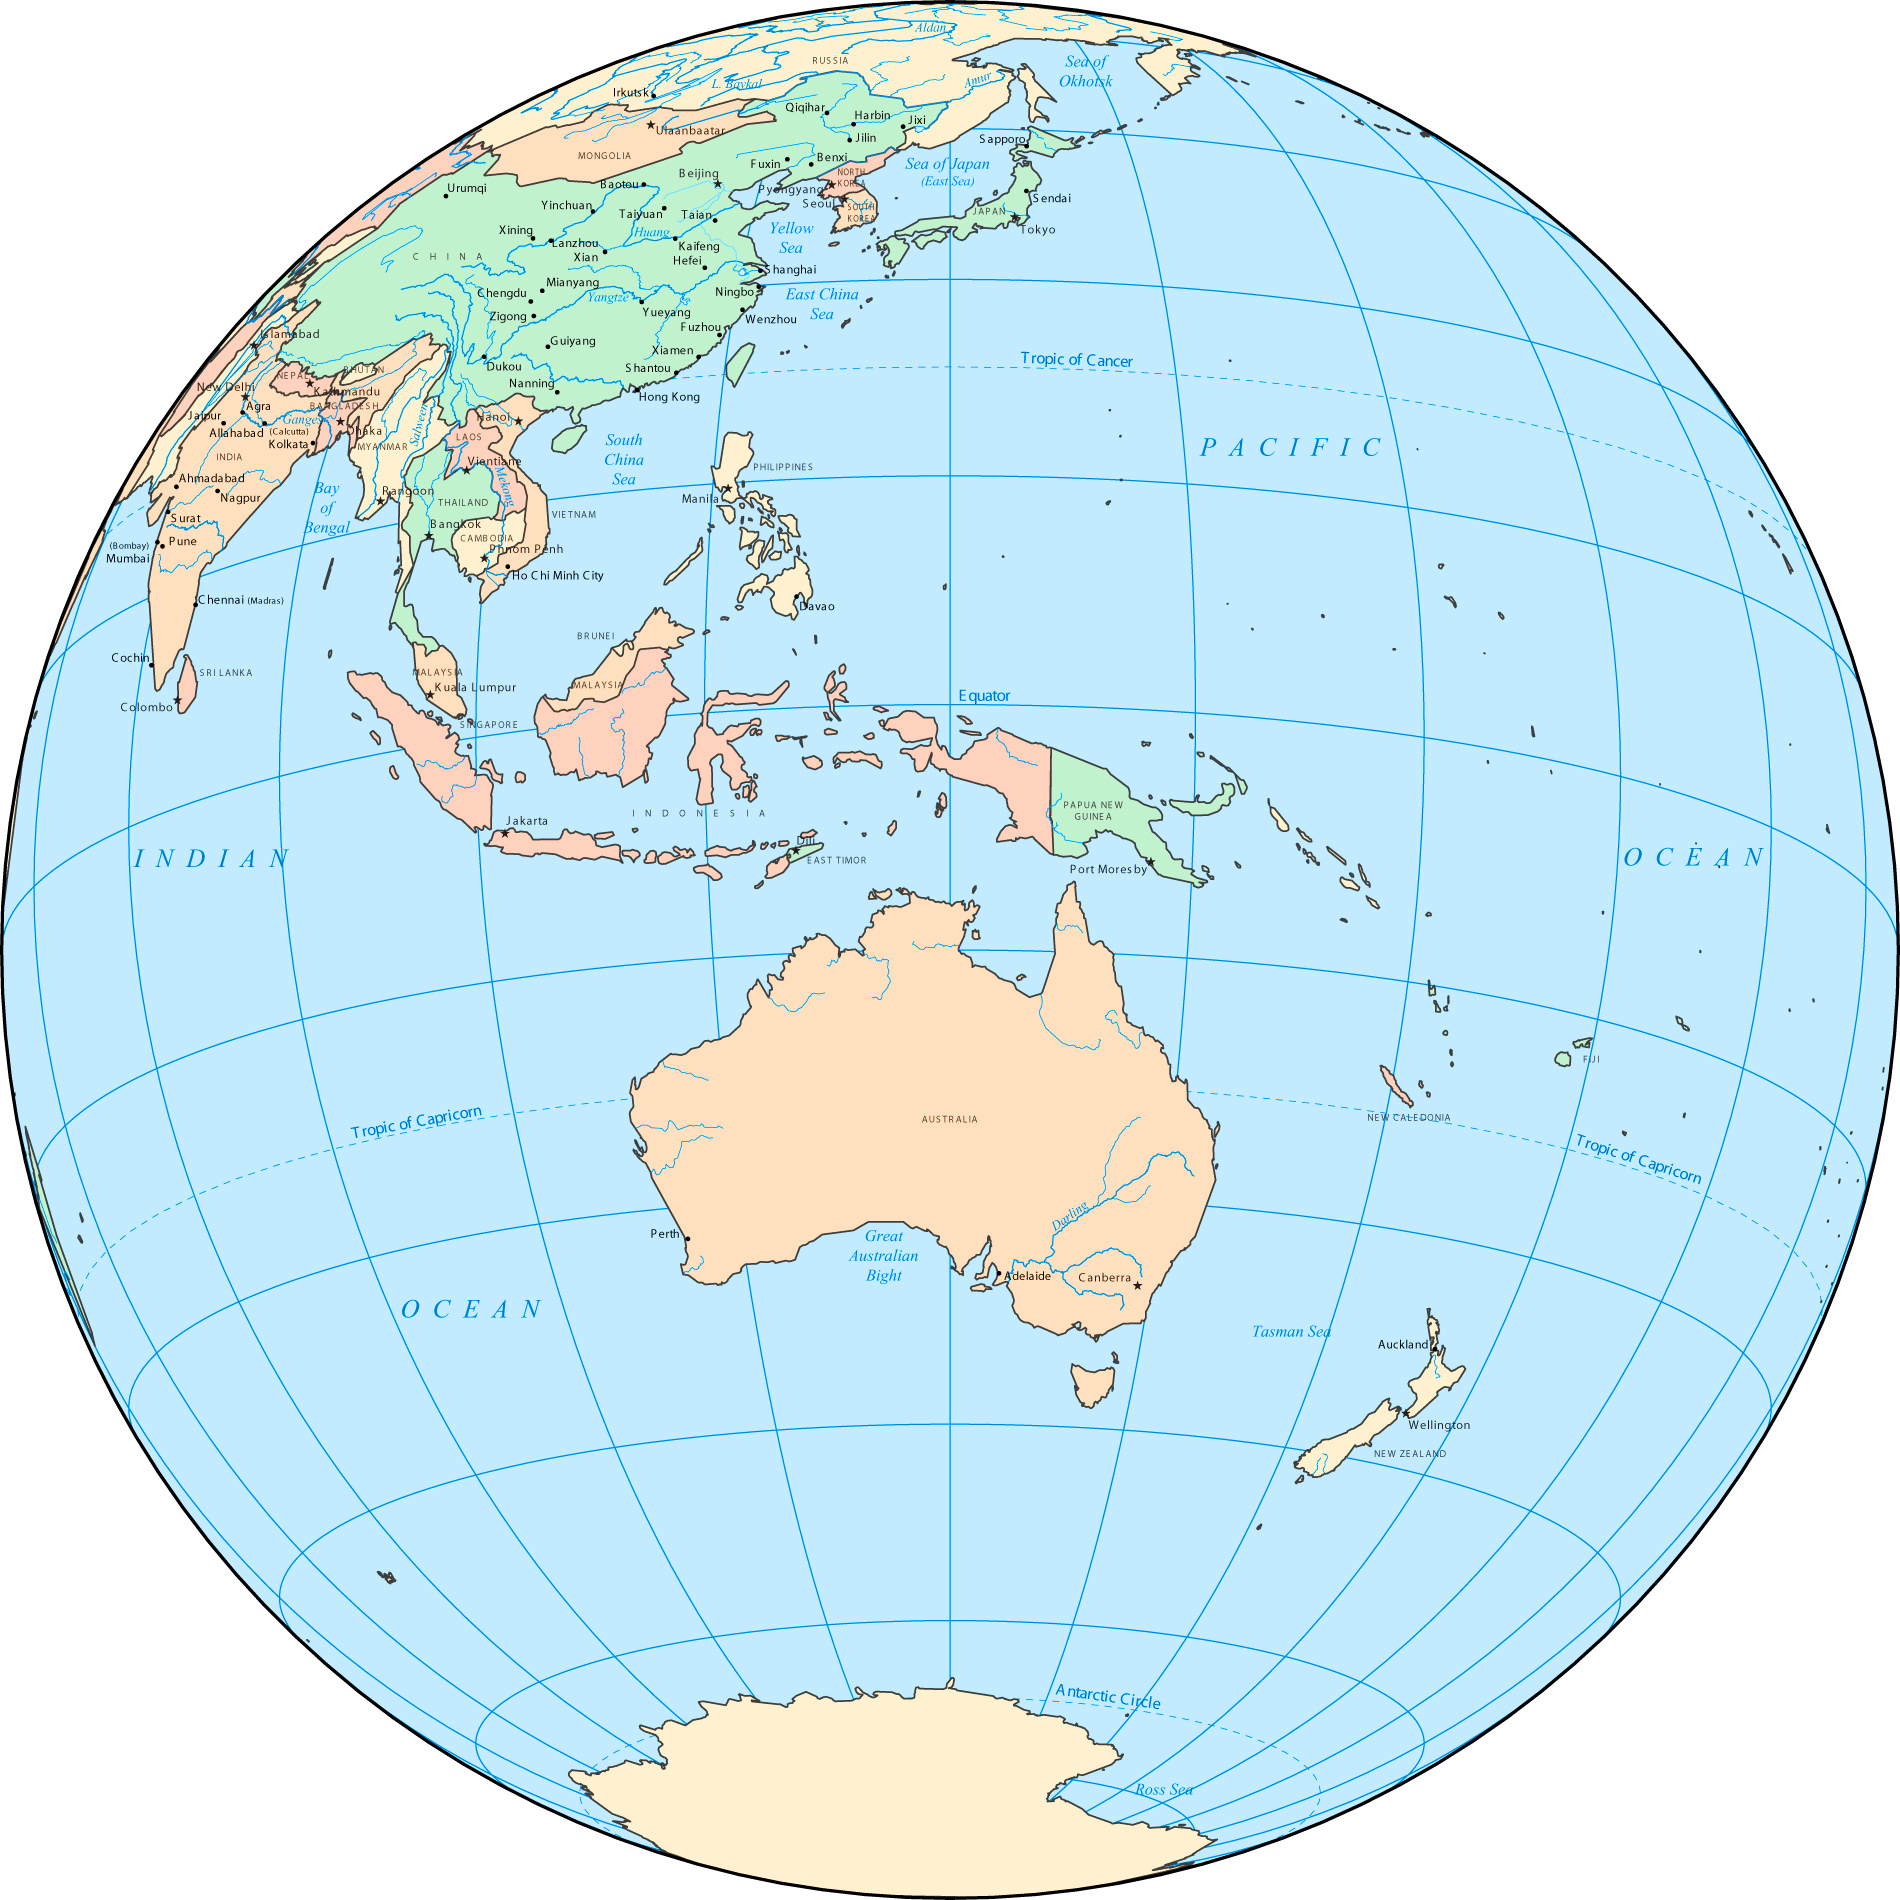 Australia Location Map.Large Detailed Location Map Of Australia And Oceania Australia And